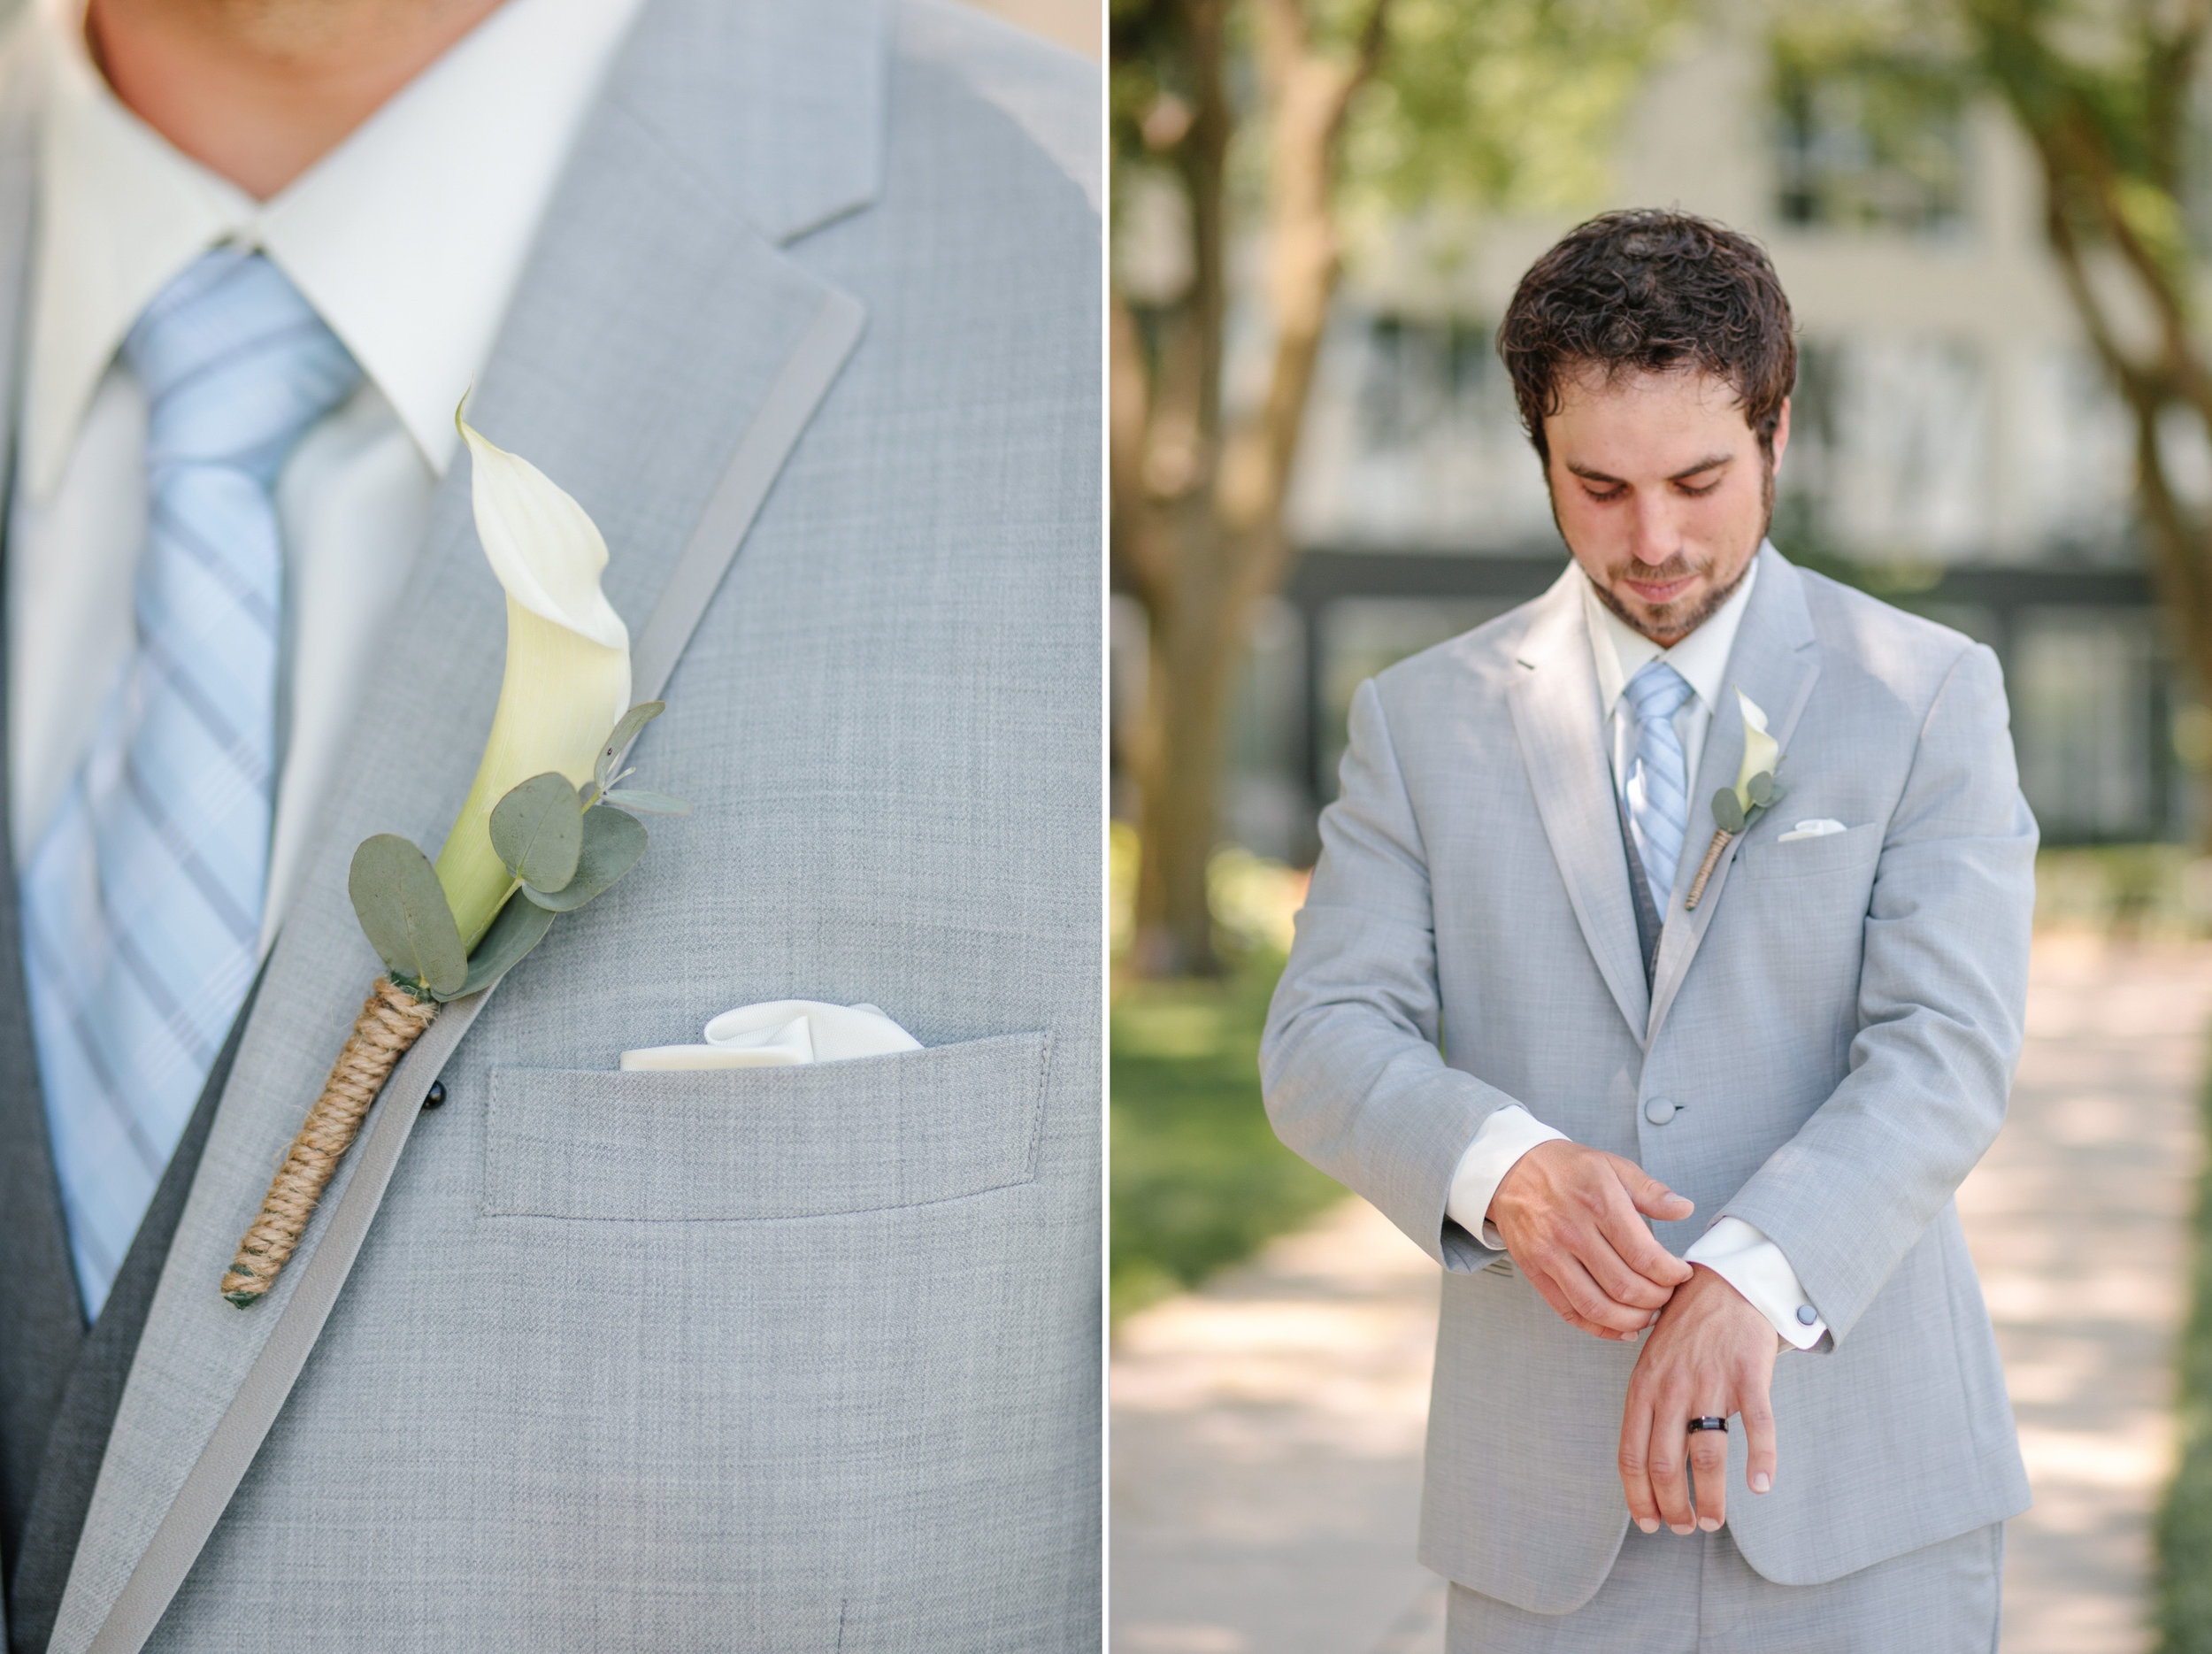 groom portraits wedding photos des moines iowa boutonniere